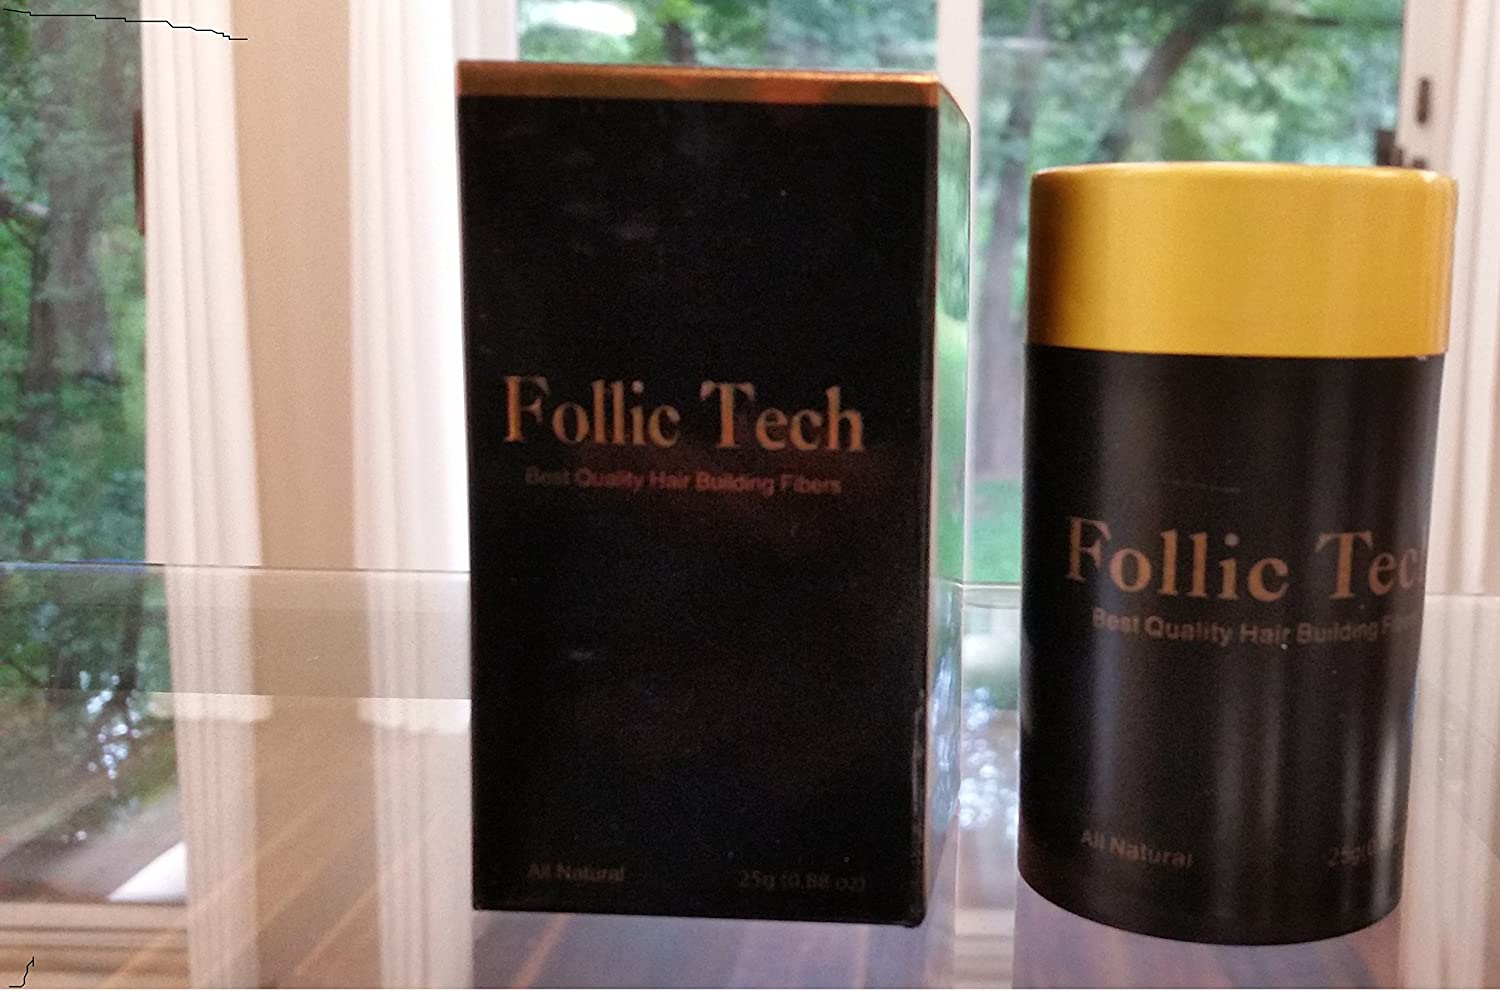 Follic Tech Hair Building Fibers Dark Brown 25 Gram Shaker Bottle Compare To Competitors Like Toppik®, Xfusion®, Miracle Hair®